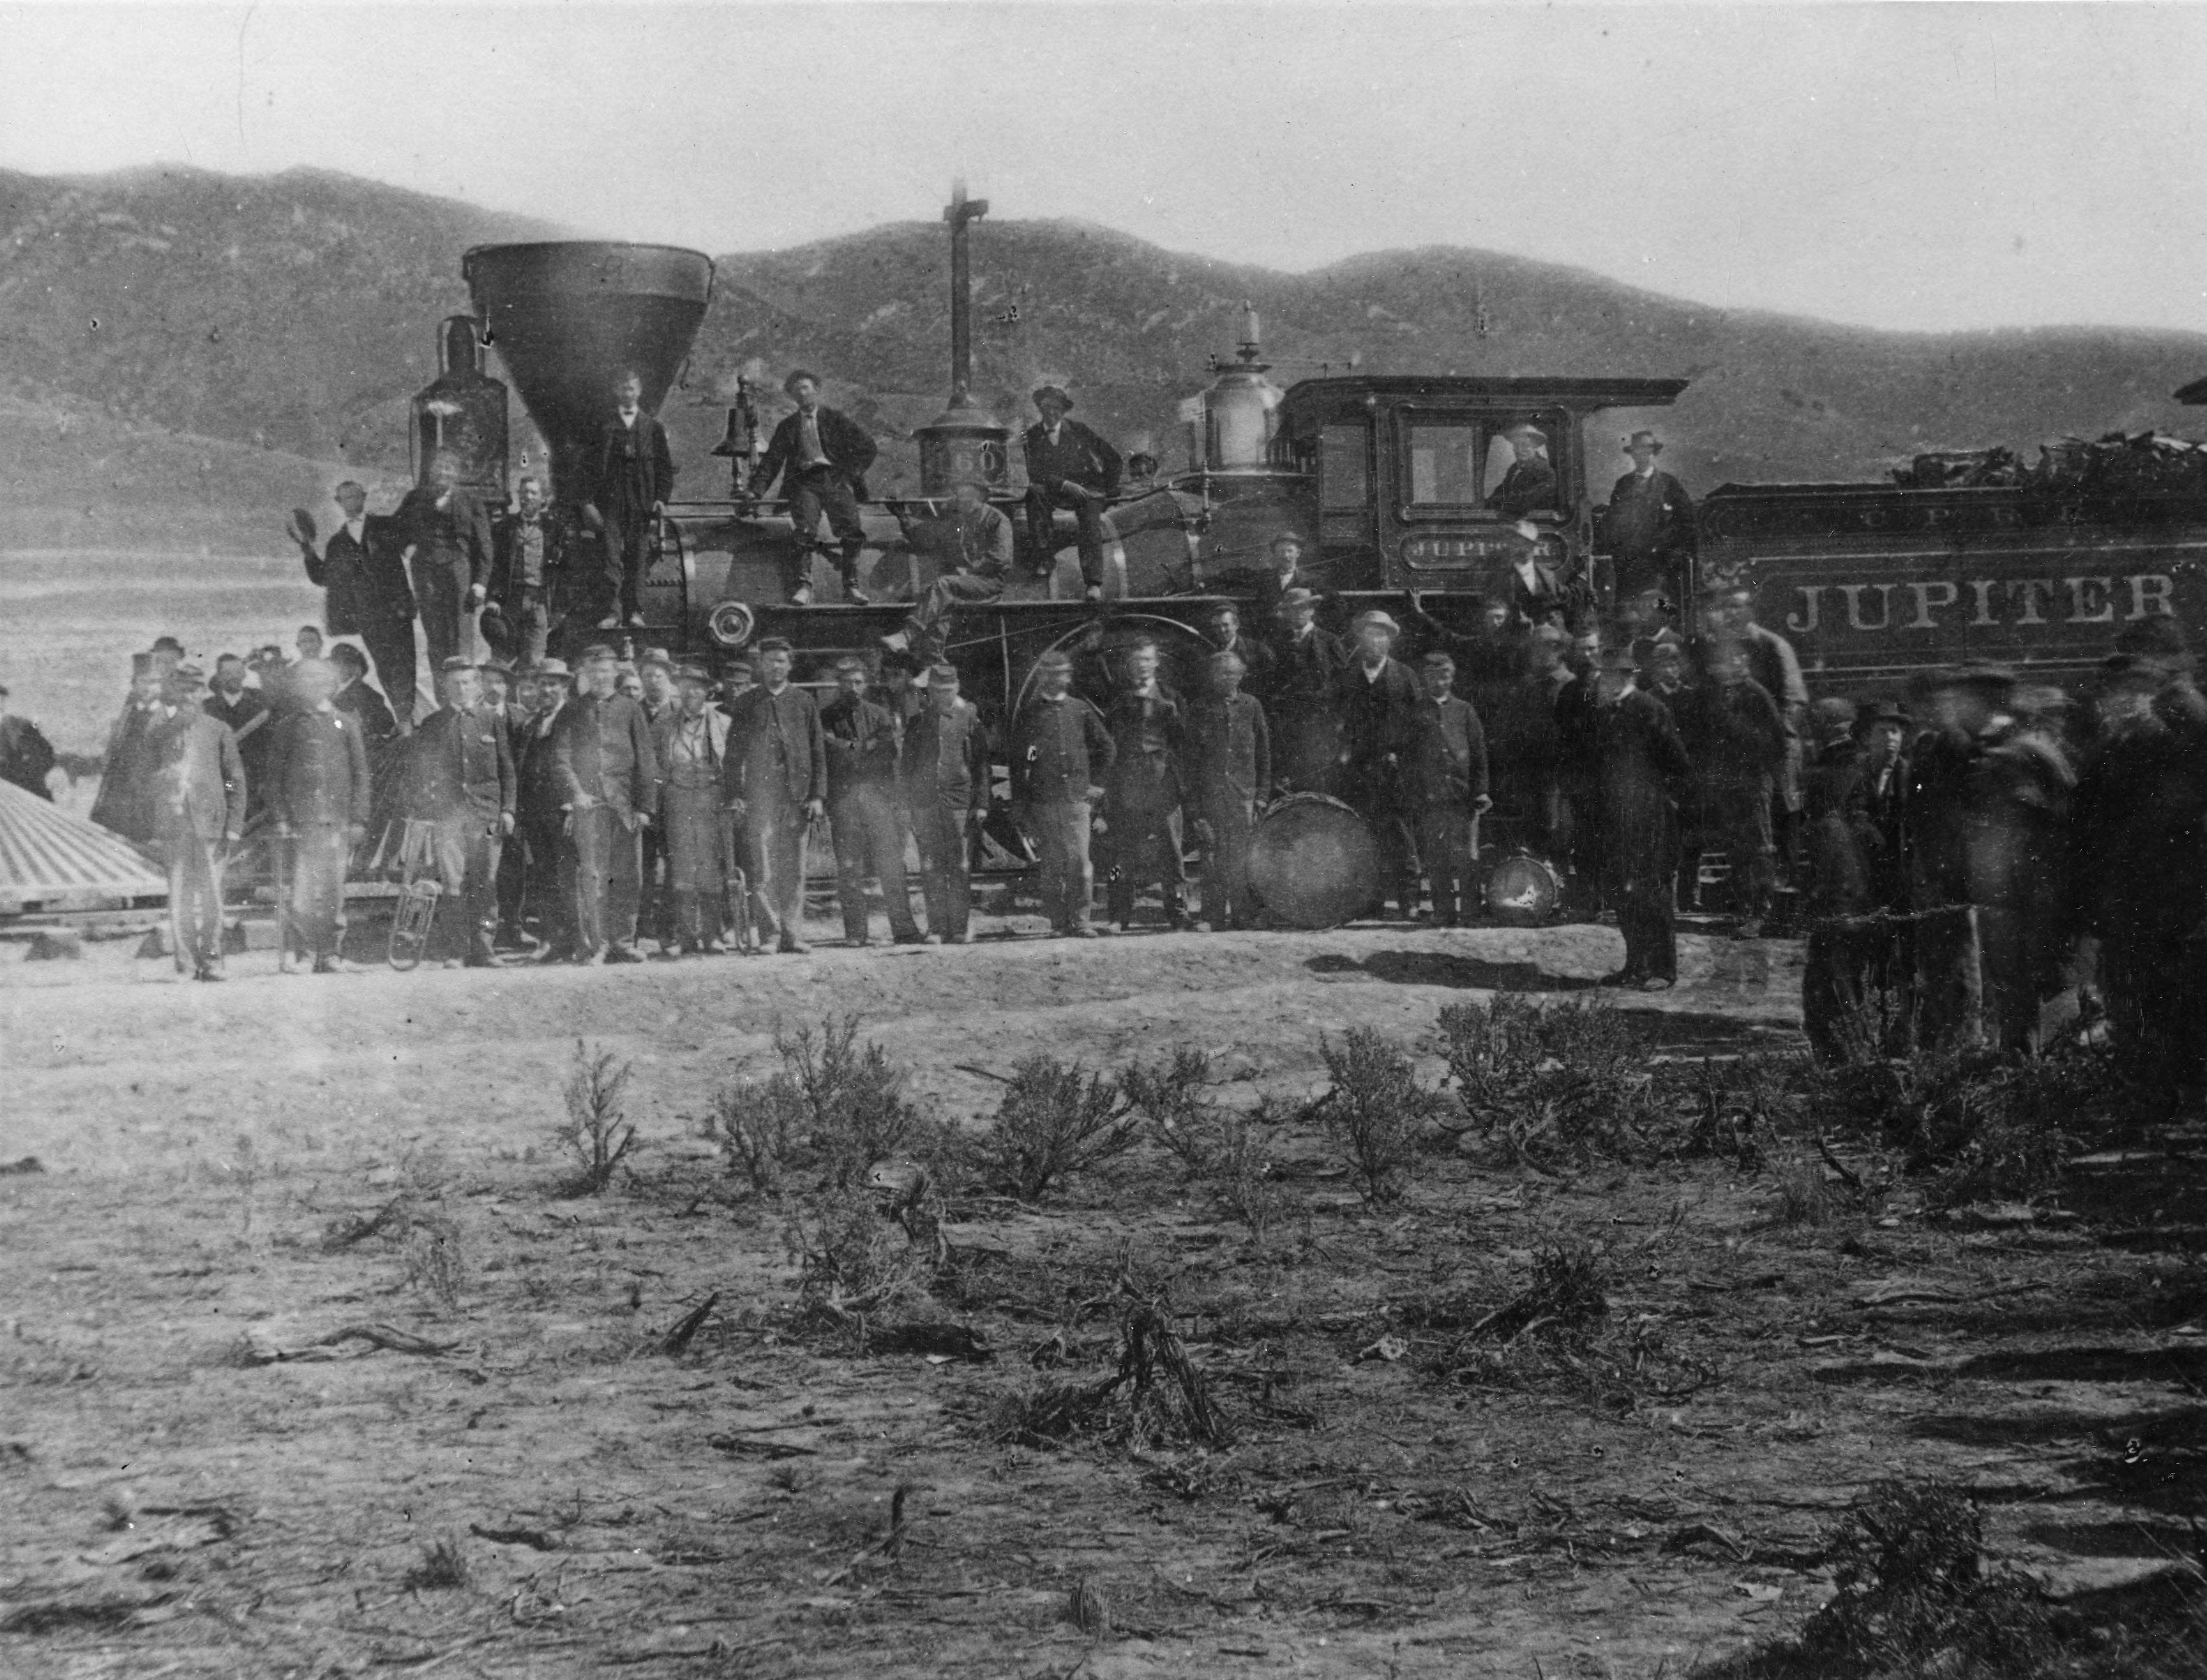 Central Pacific locomotive #60, Jupiter, is photographed at Promontory Summit, May 10, 1869, after the driving of the last spike.